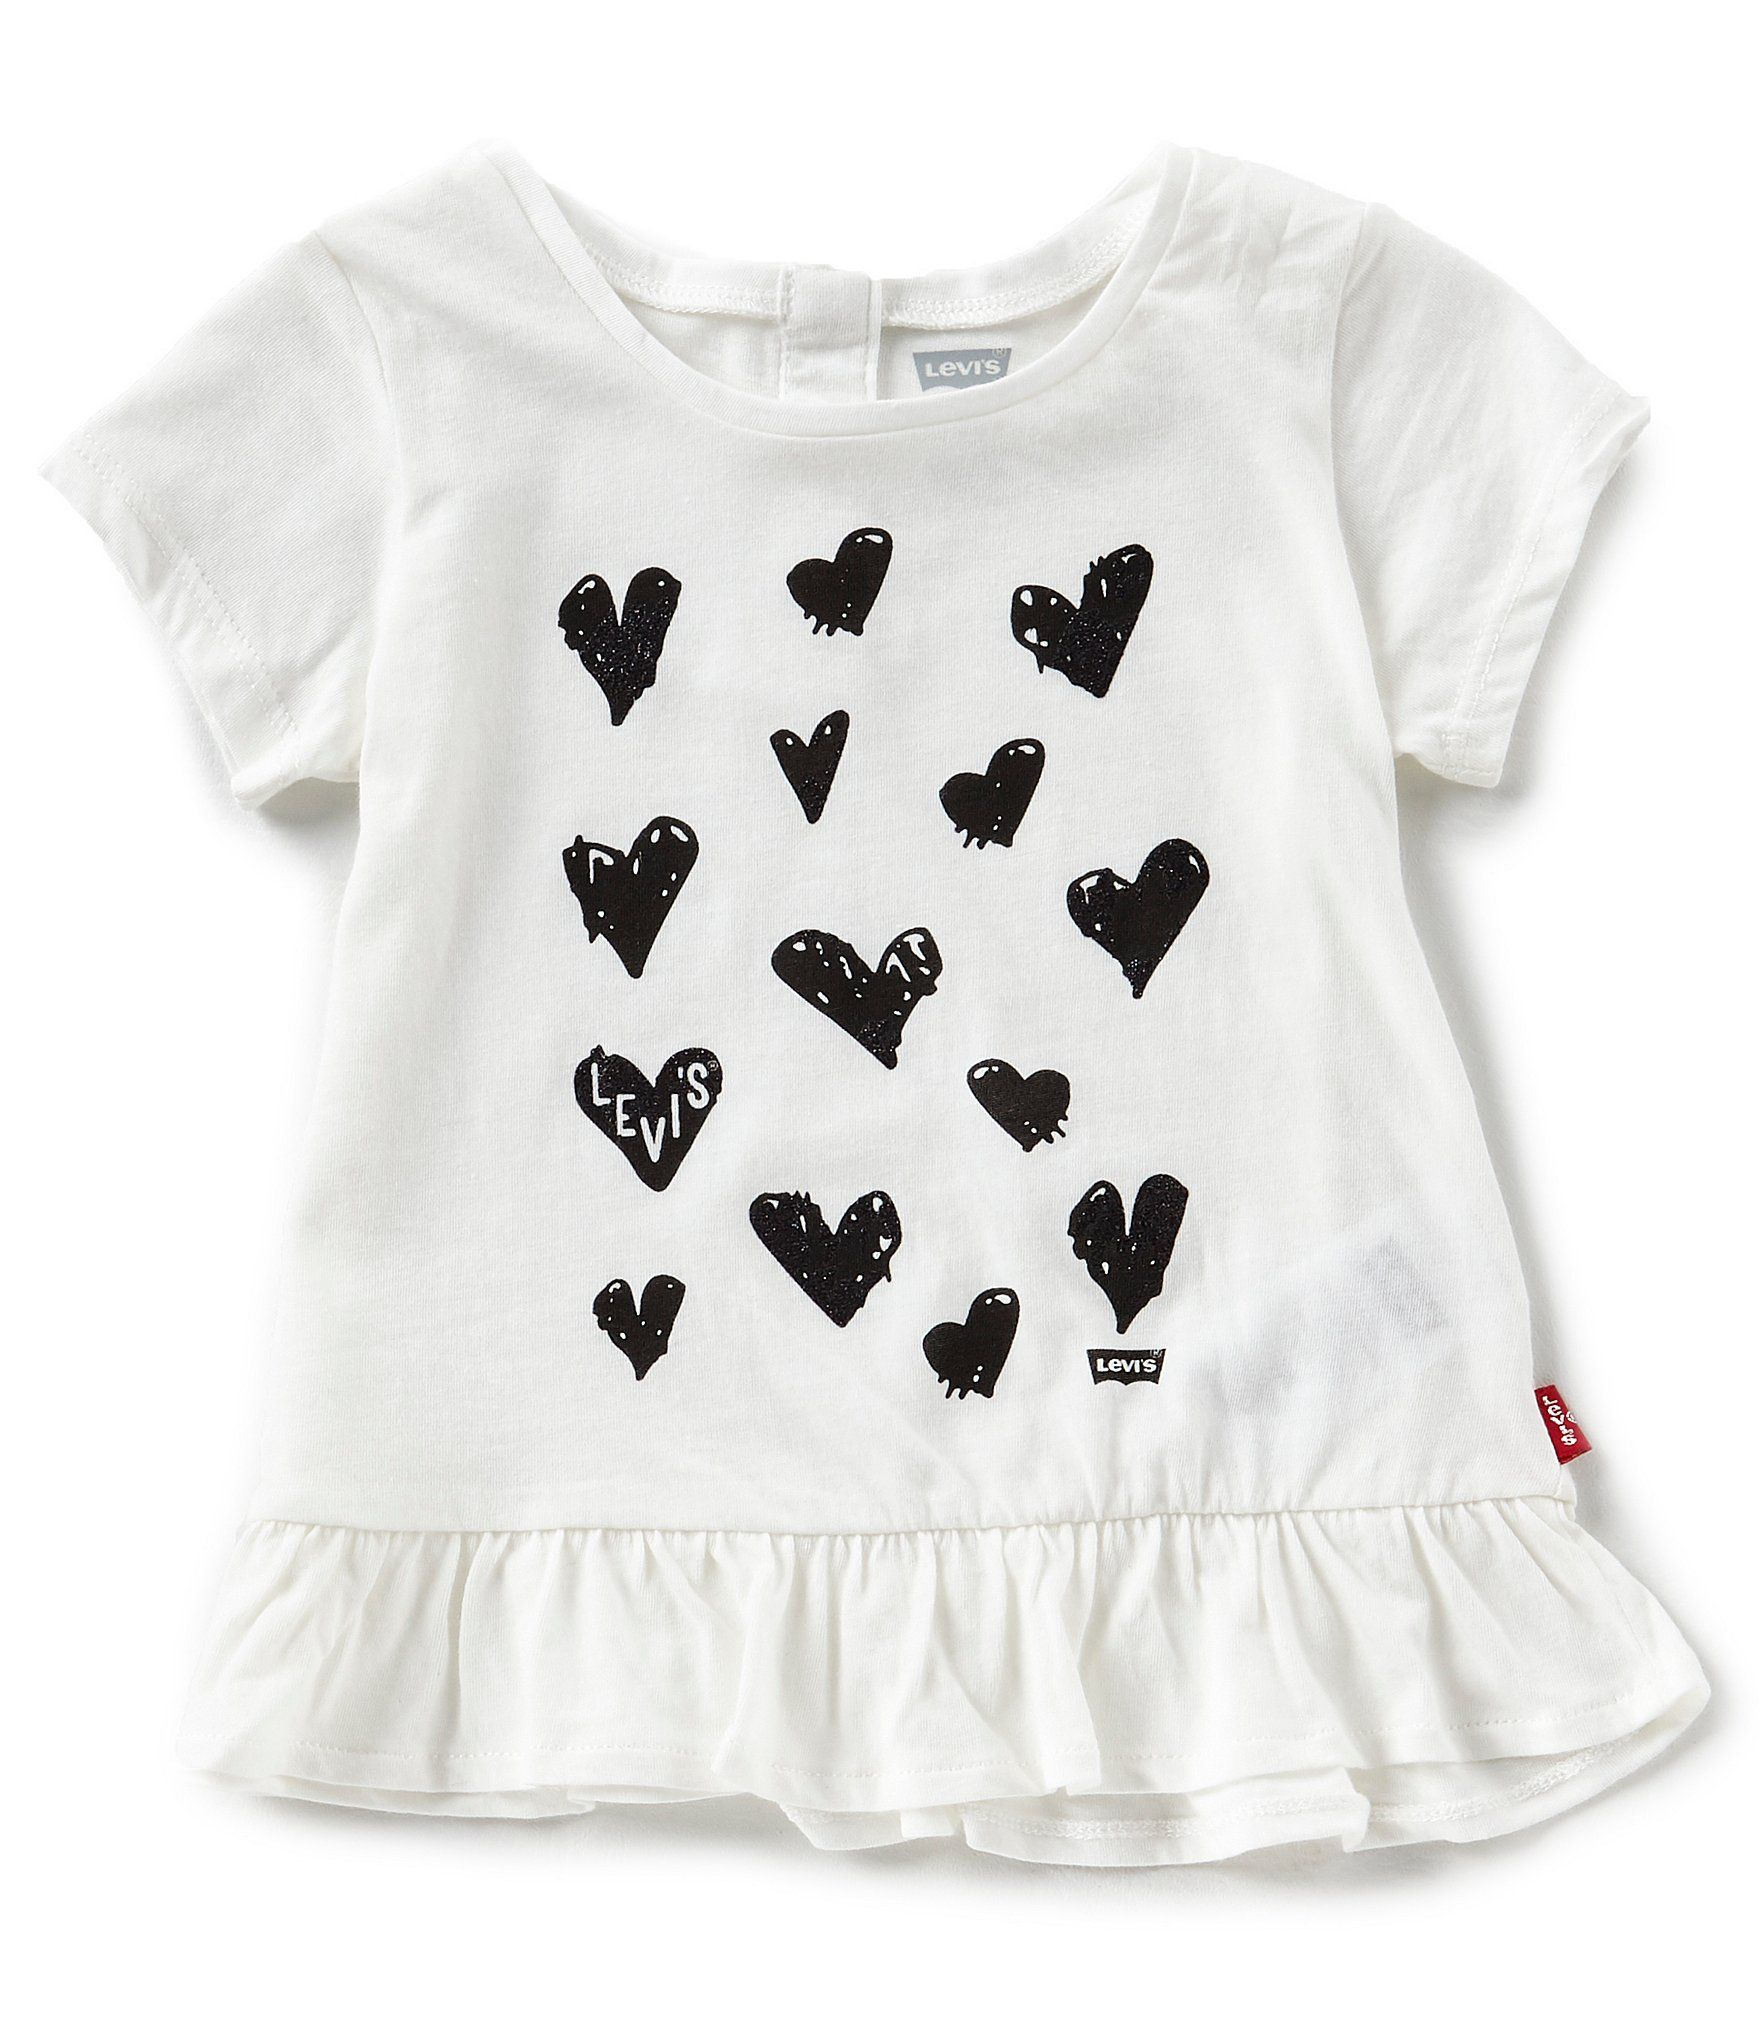 Levis Baby Girls 1224 Months HeartPrint Peplum Tee Dillards